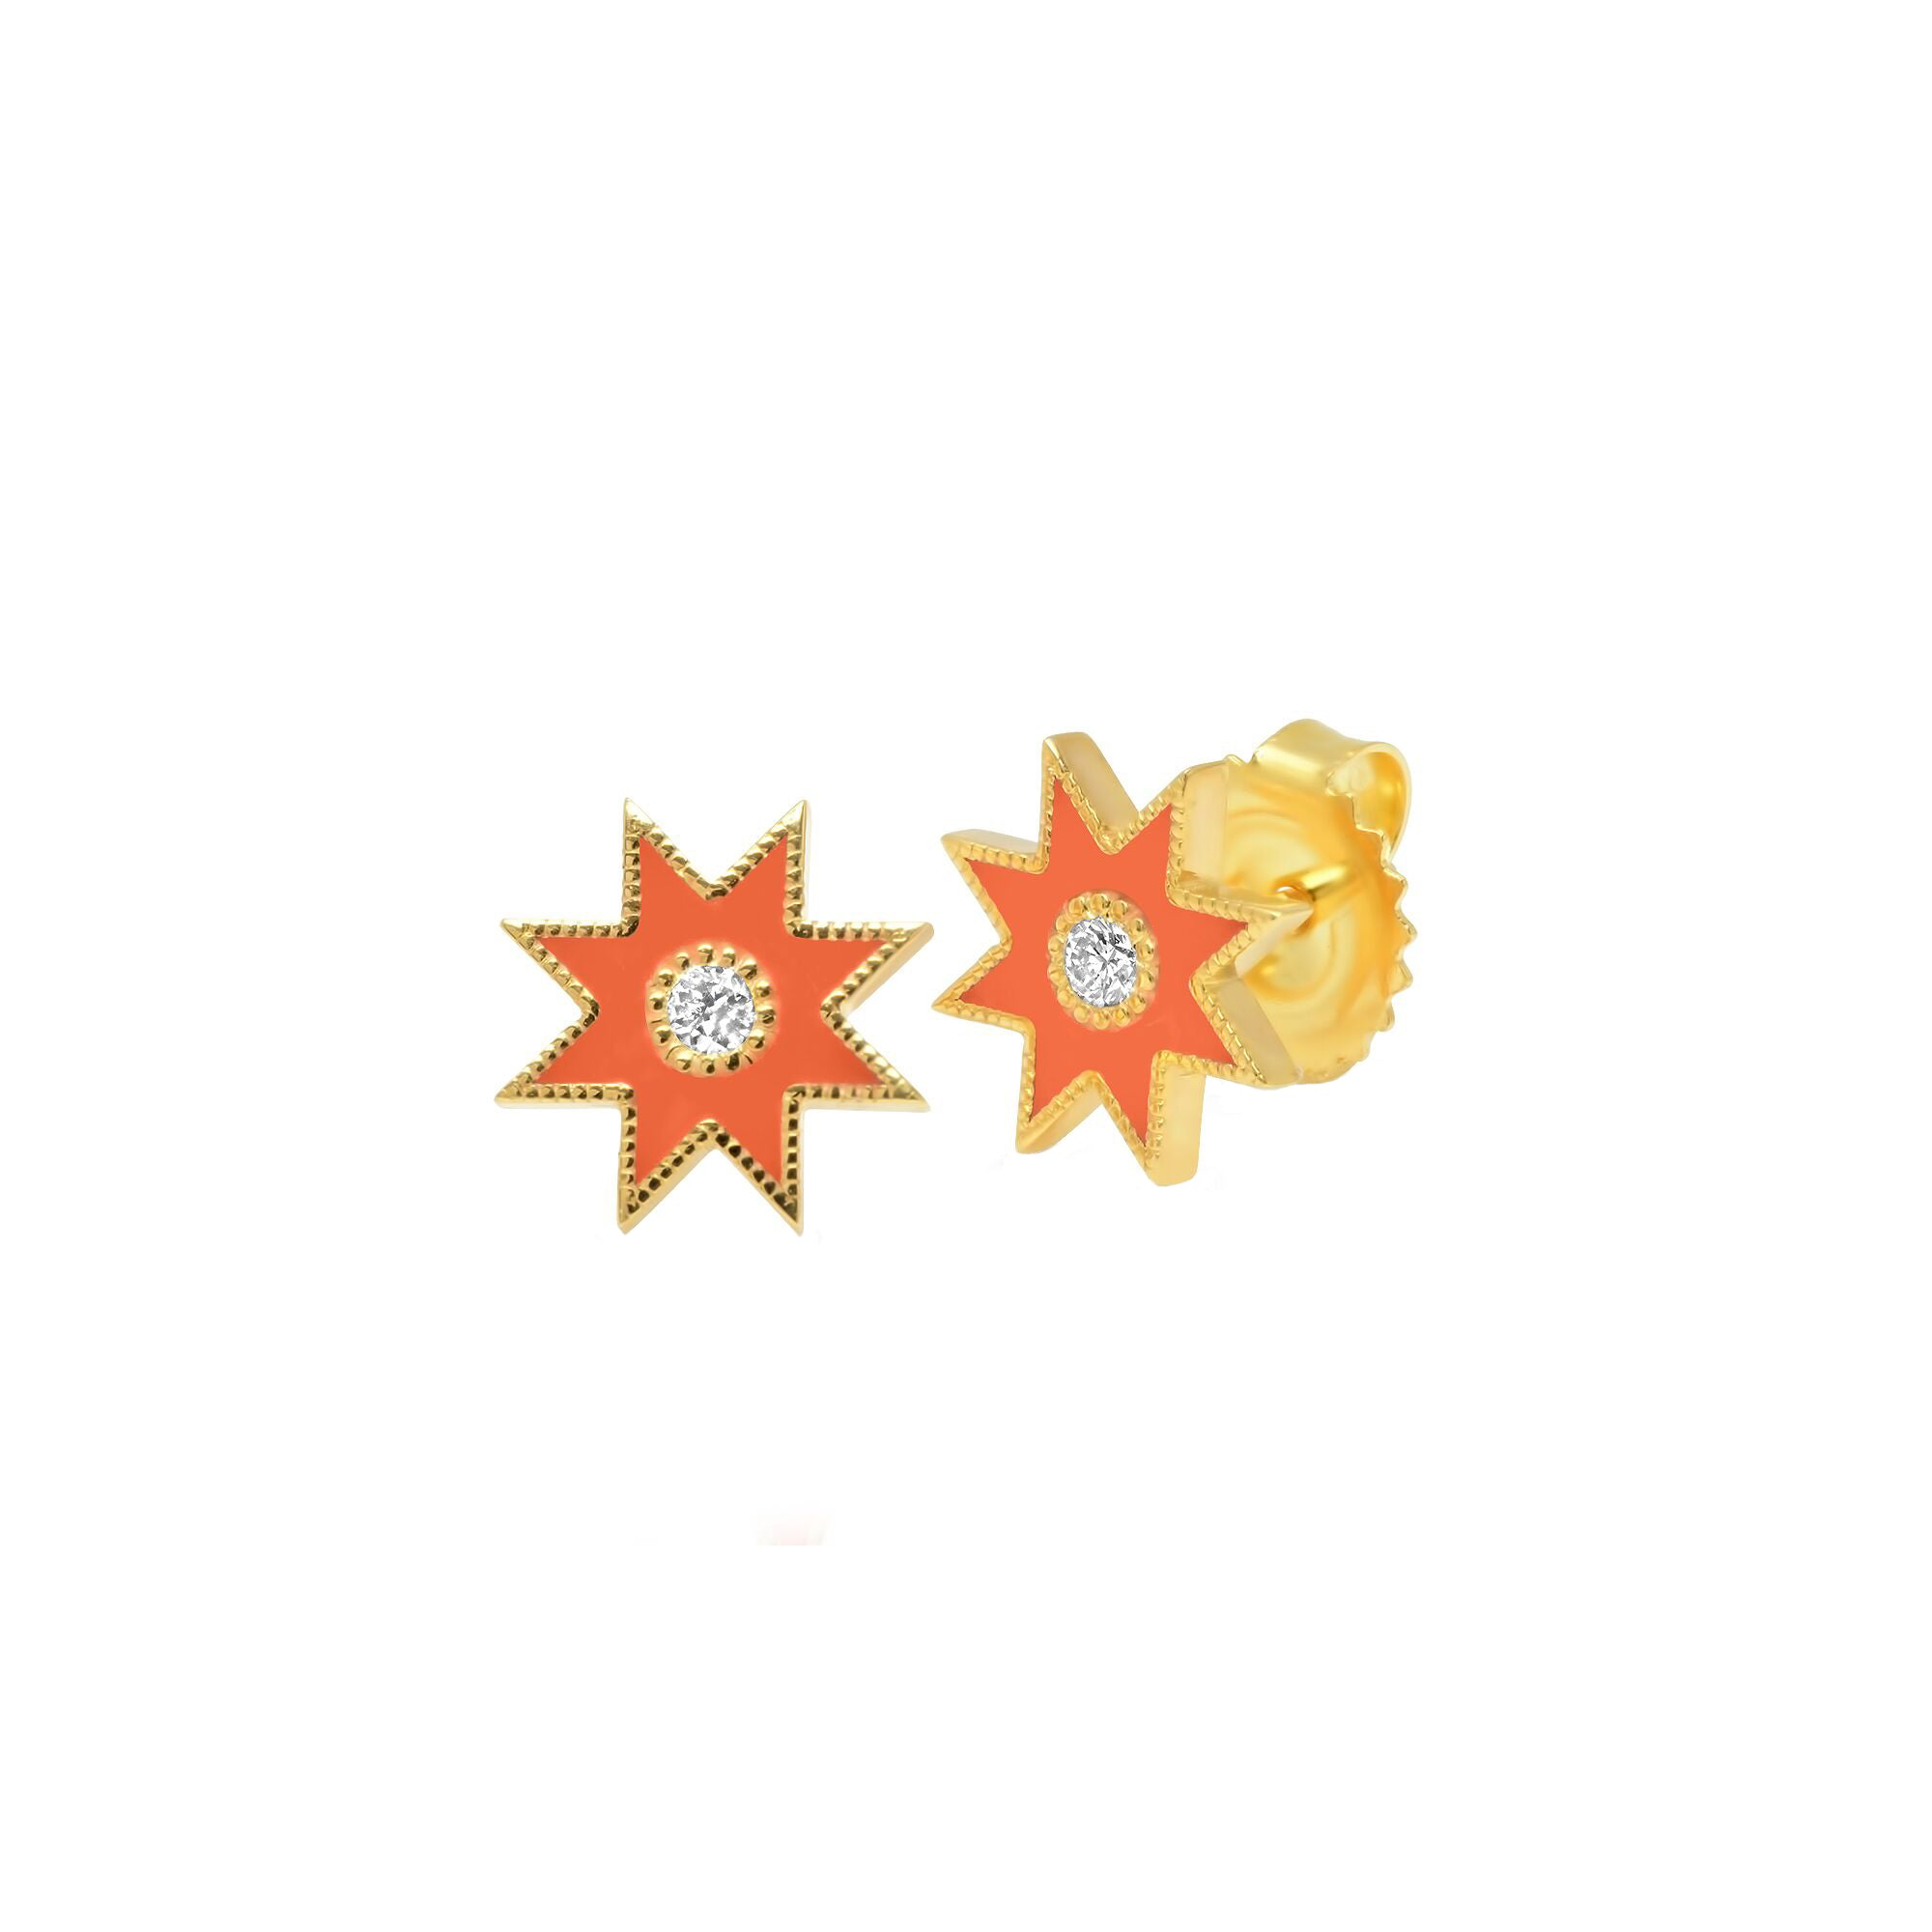 Orange Star Studs by Colette for Broken English Jewelry